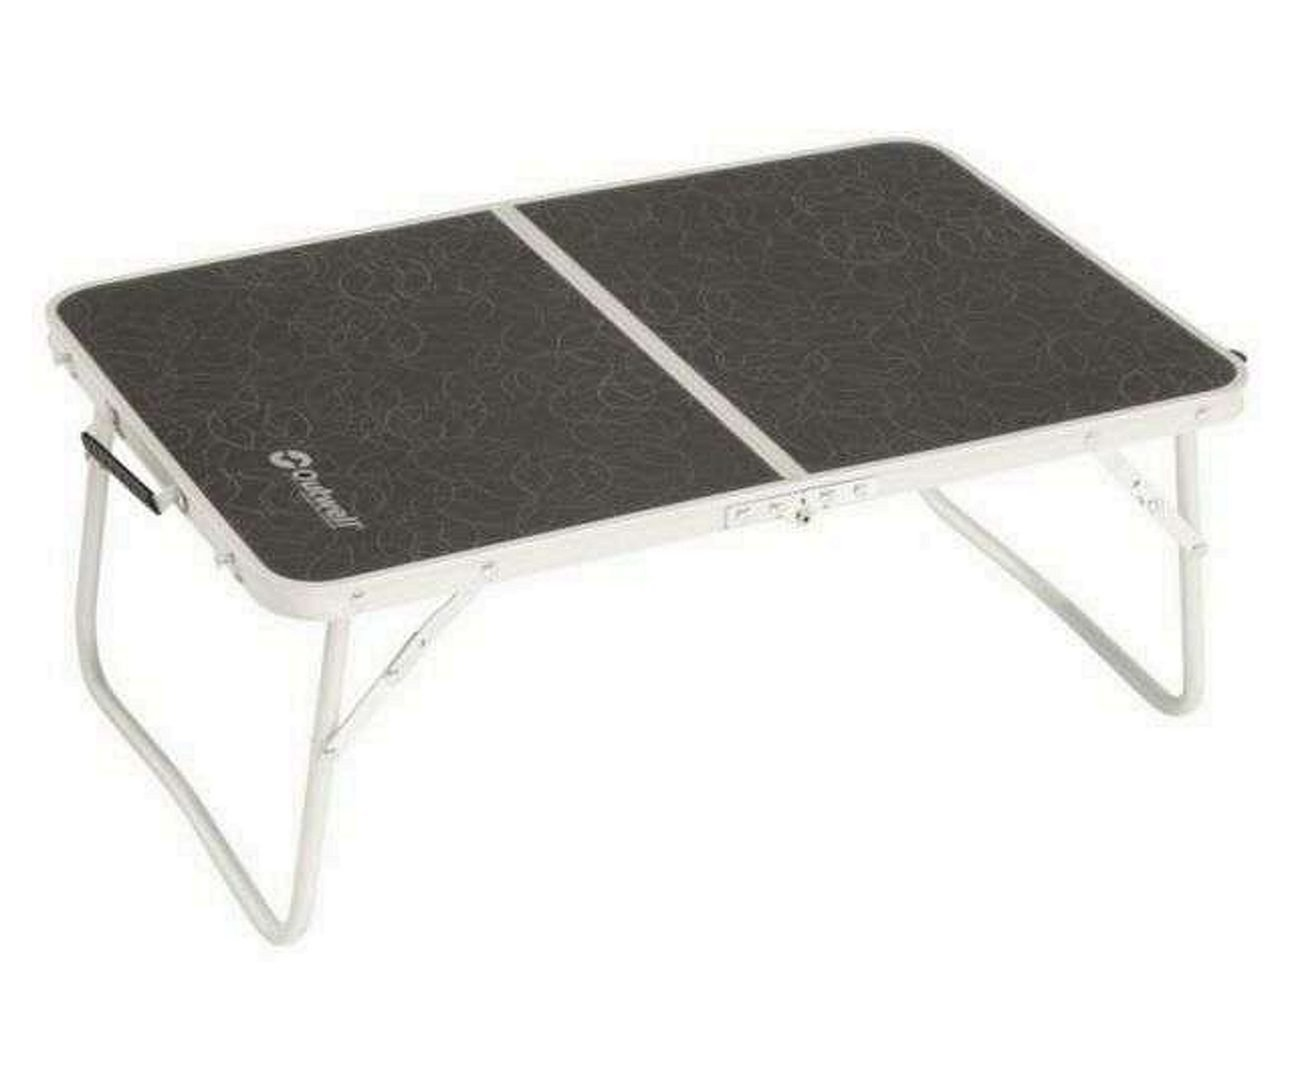 Outwell Picnic Folding Table